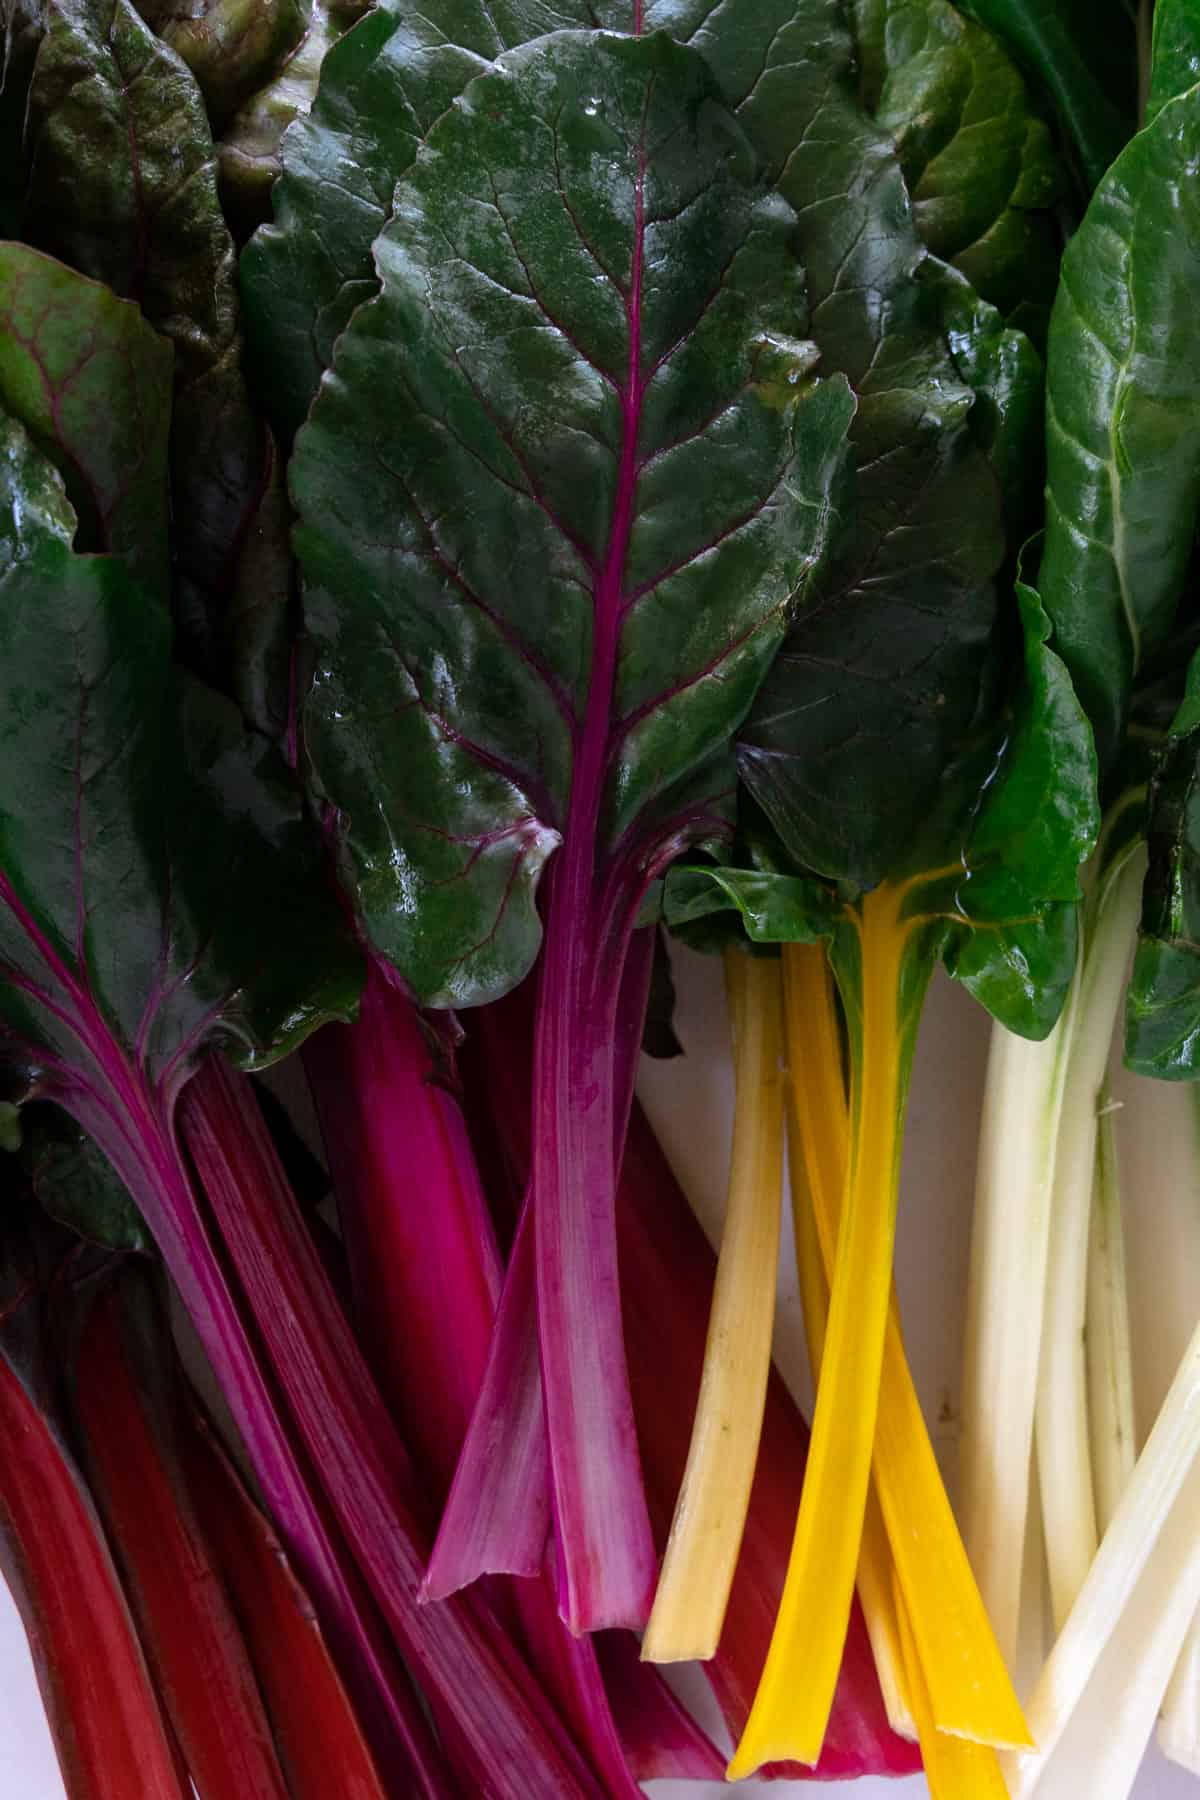 rainbow chard leaves with red, pink, yellow and white stalks